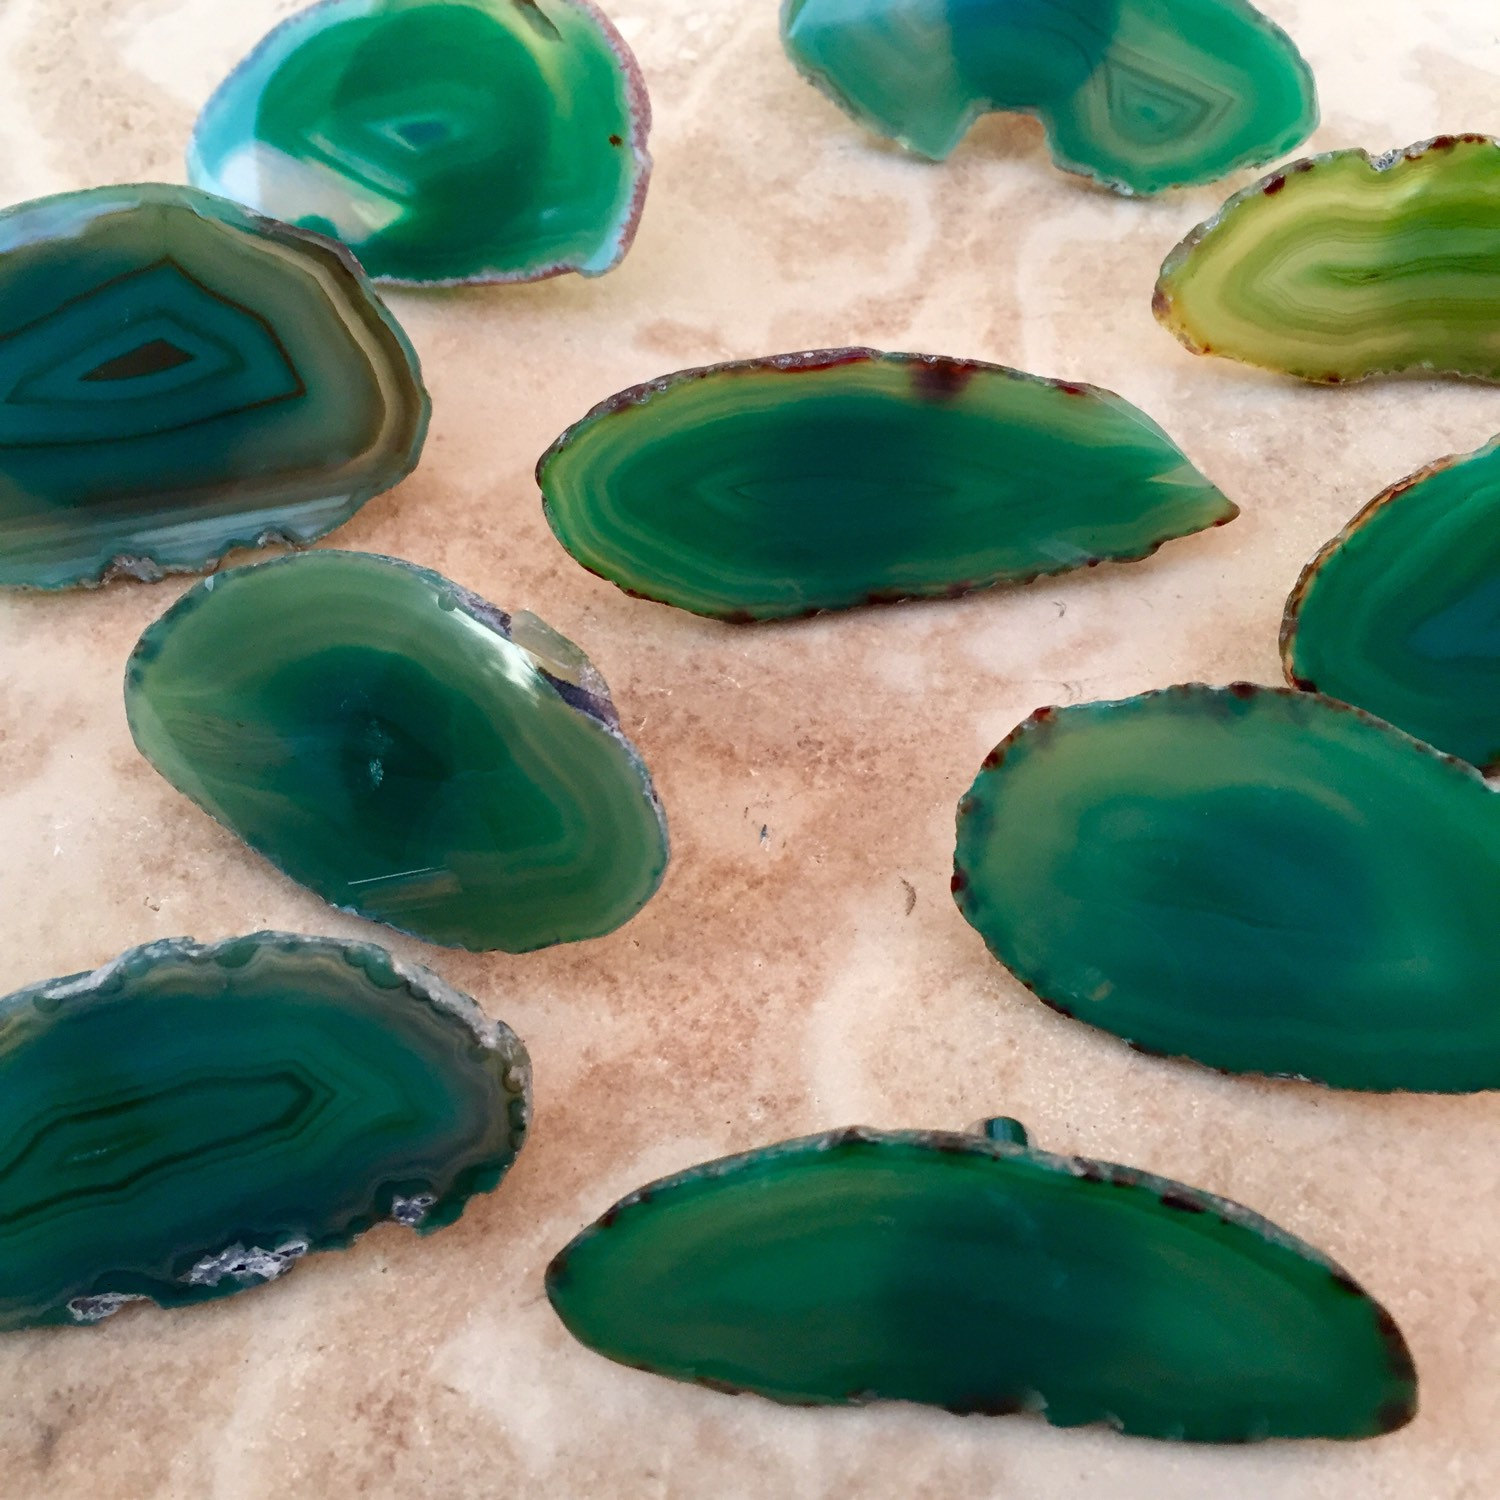 Green agate drawer pulls from Rocks4ACause